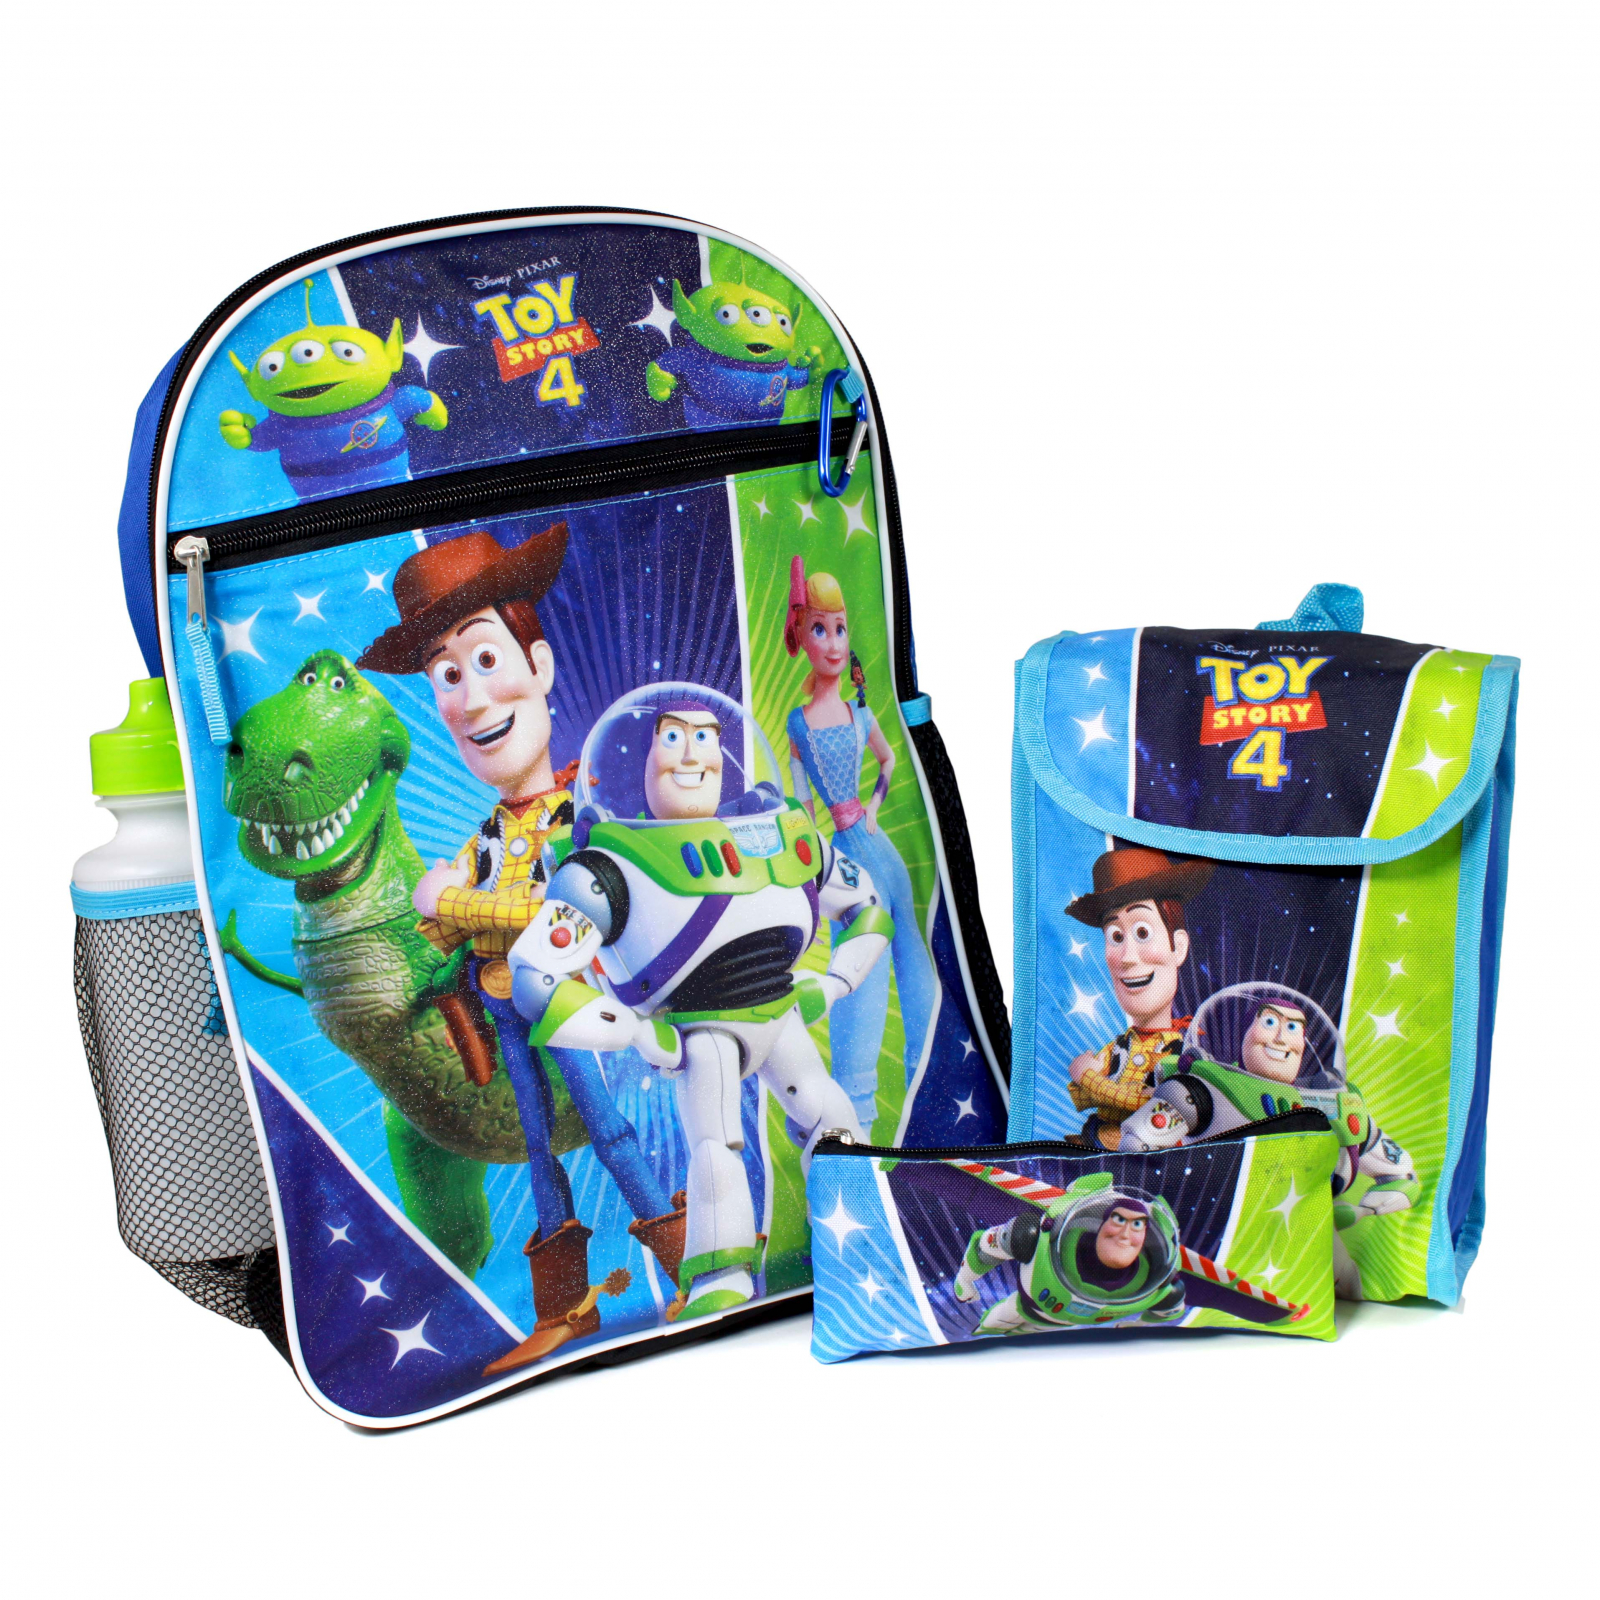 Toy Story 4 5 Piece Kids School Backpack And Lunch Box Set